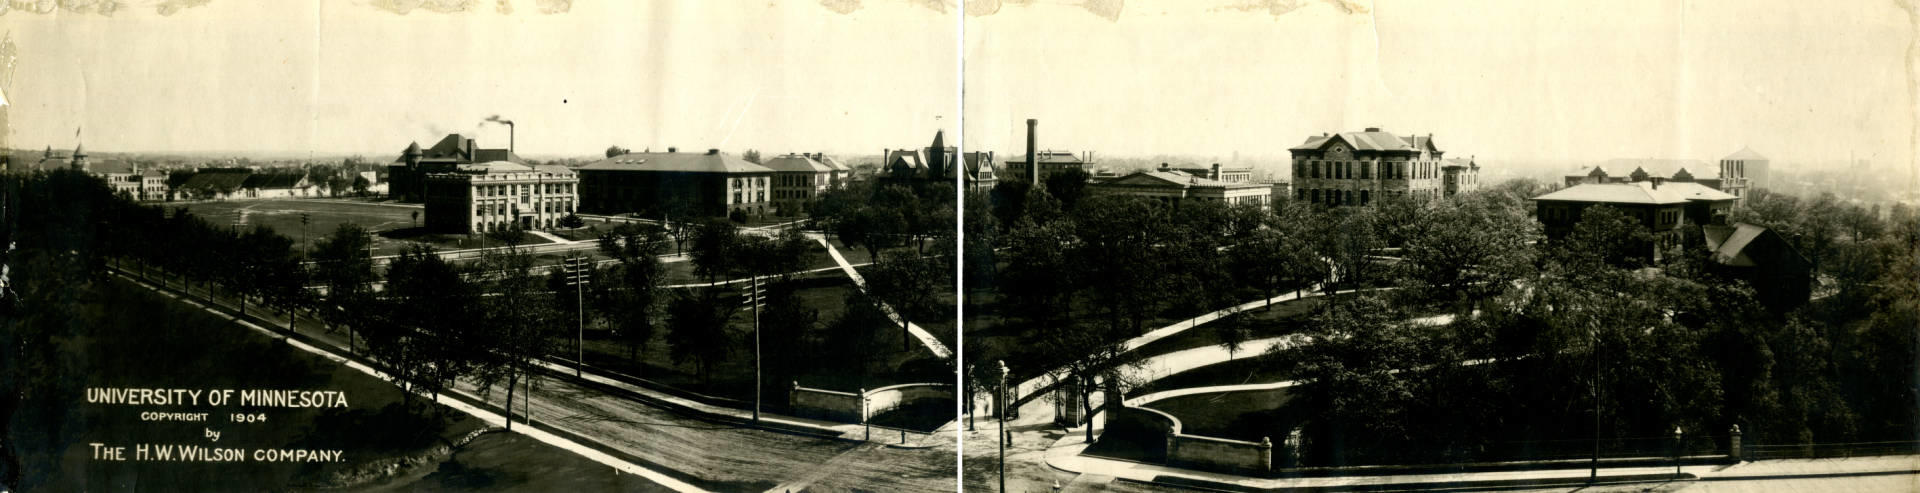 Campus photo, 1904, courtesy of University of Minnesota Libraries, University Archives.